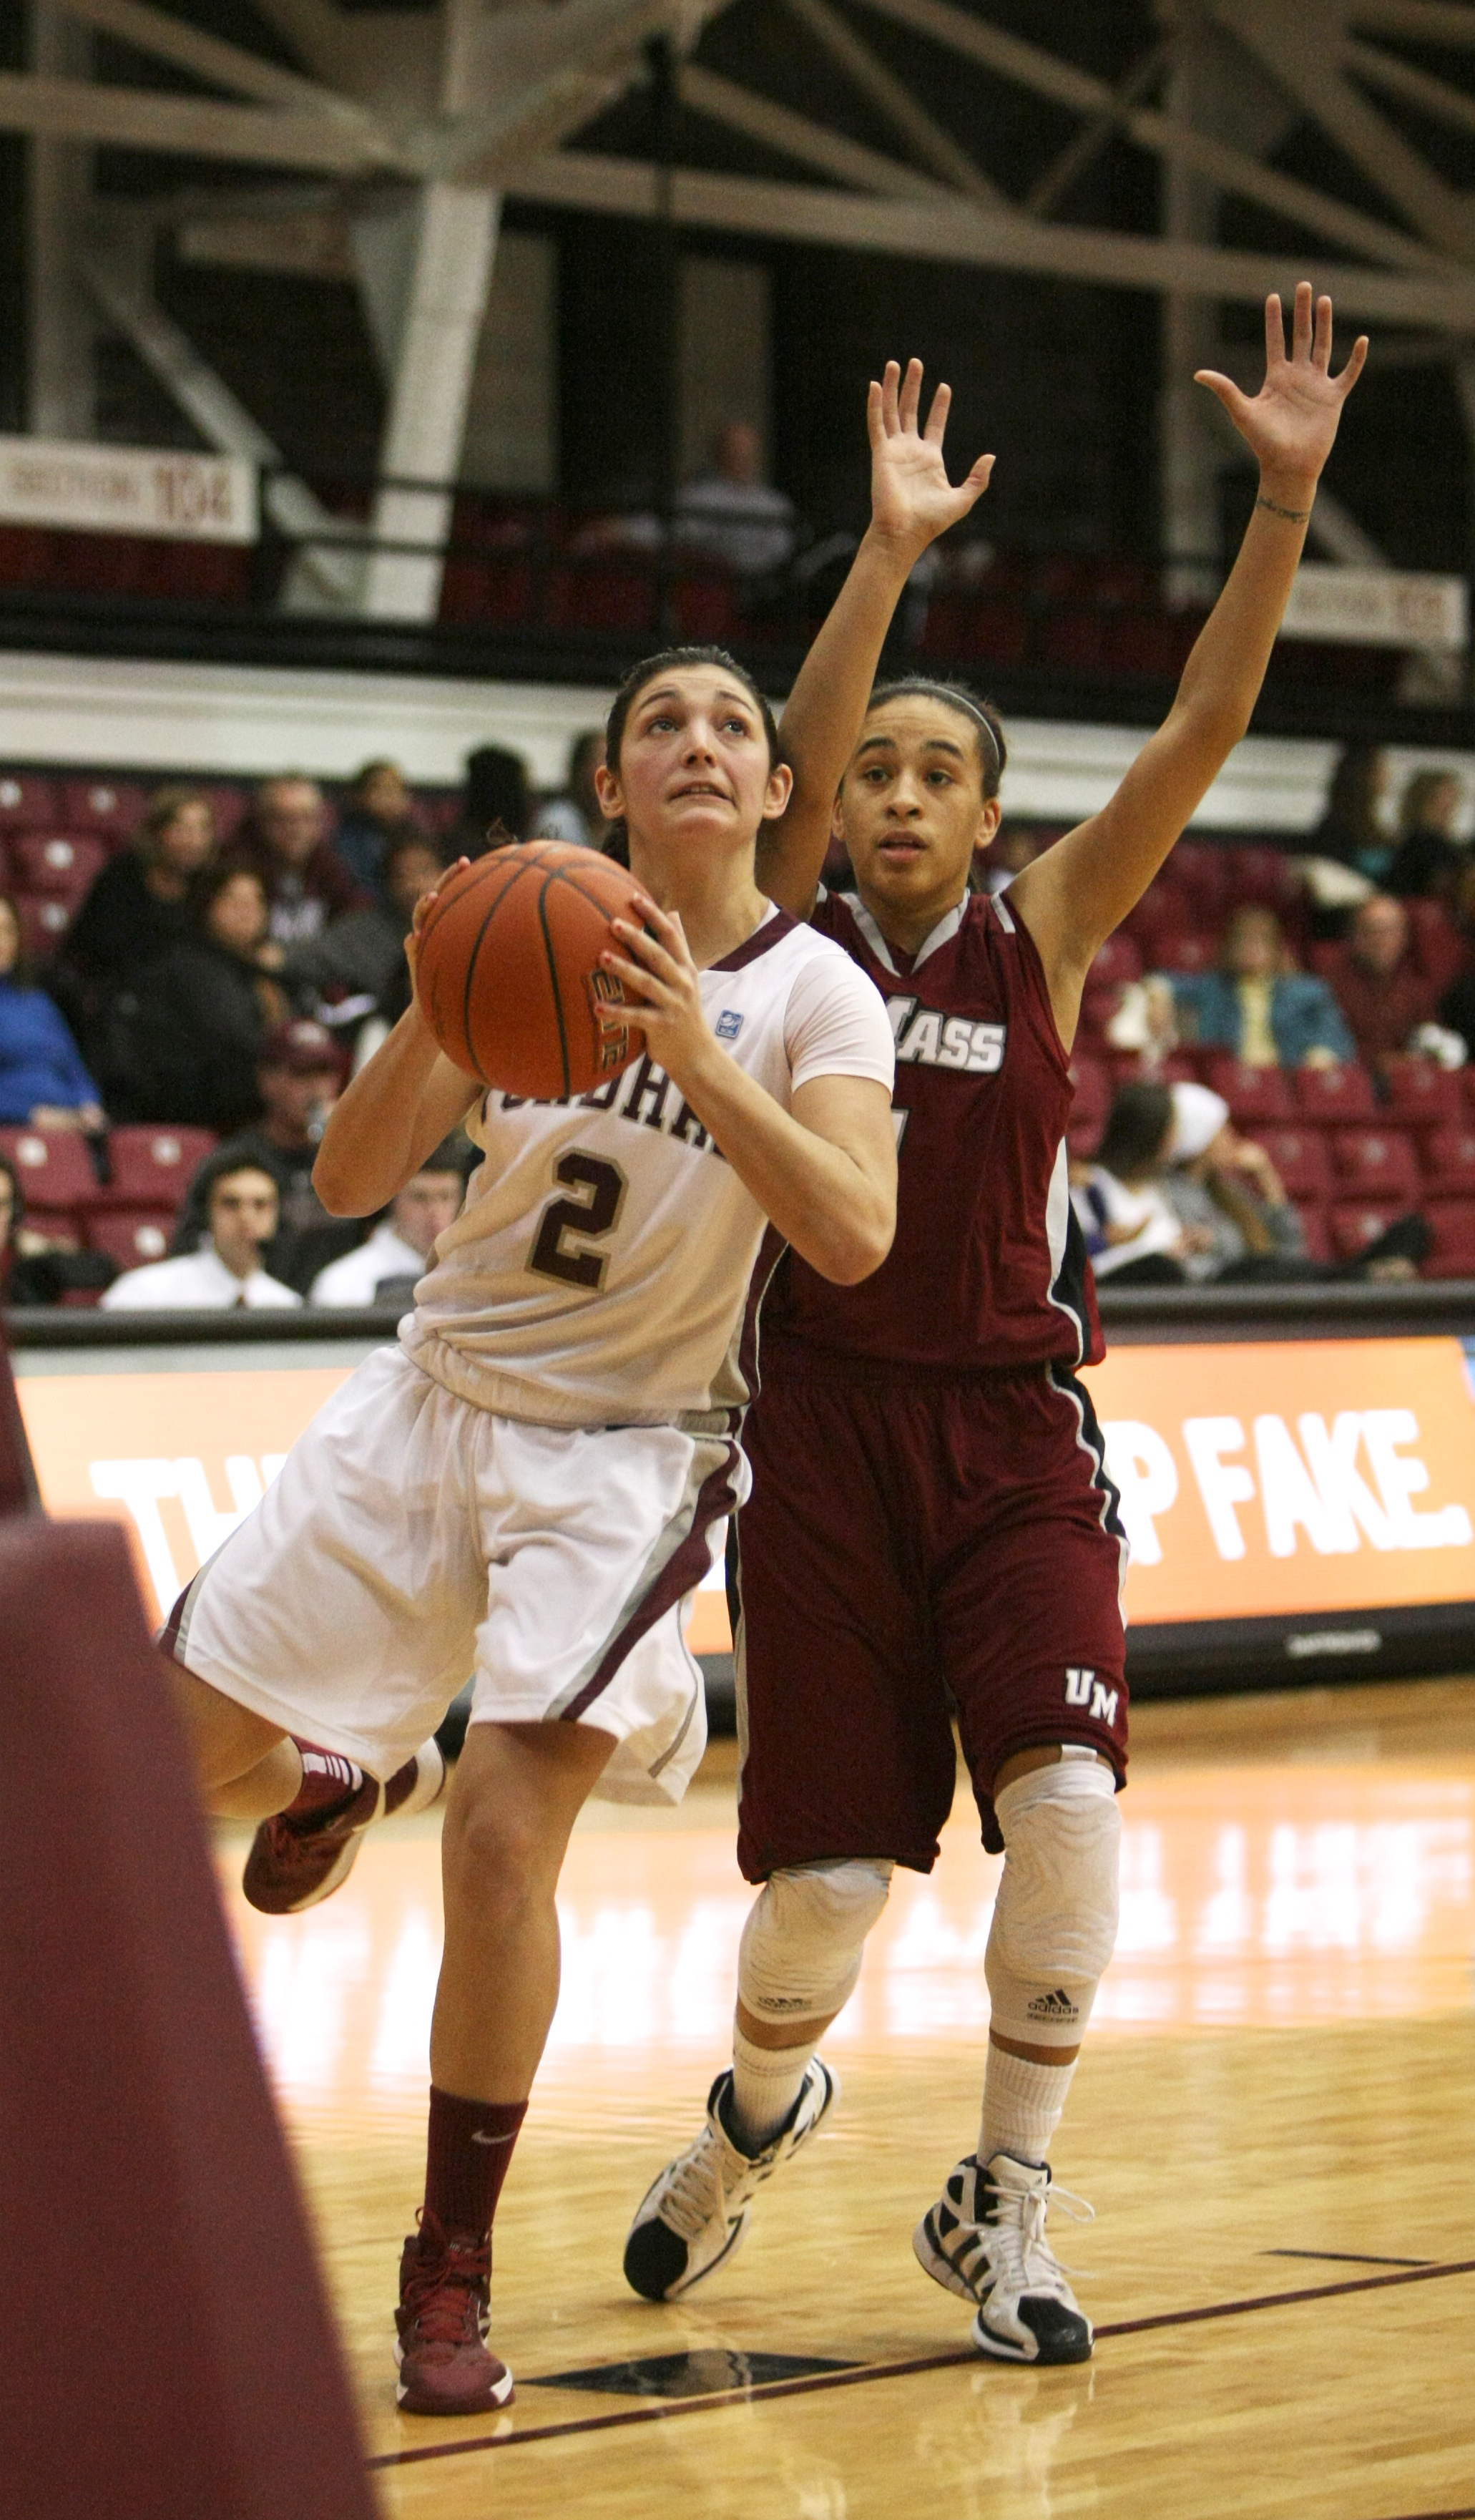 Ally White/The Ram Arielle Collins had a season-high 17 points in the Rams' loss to Duquesne.